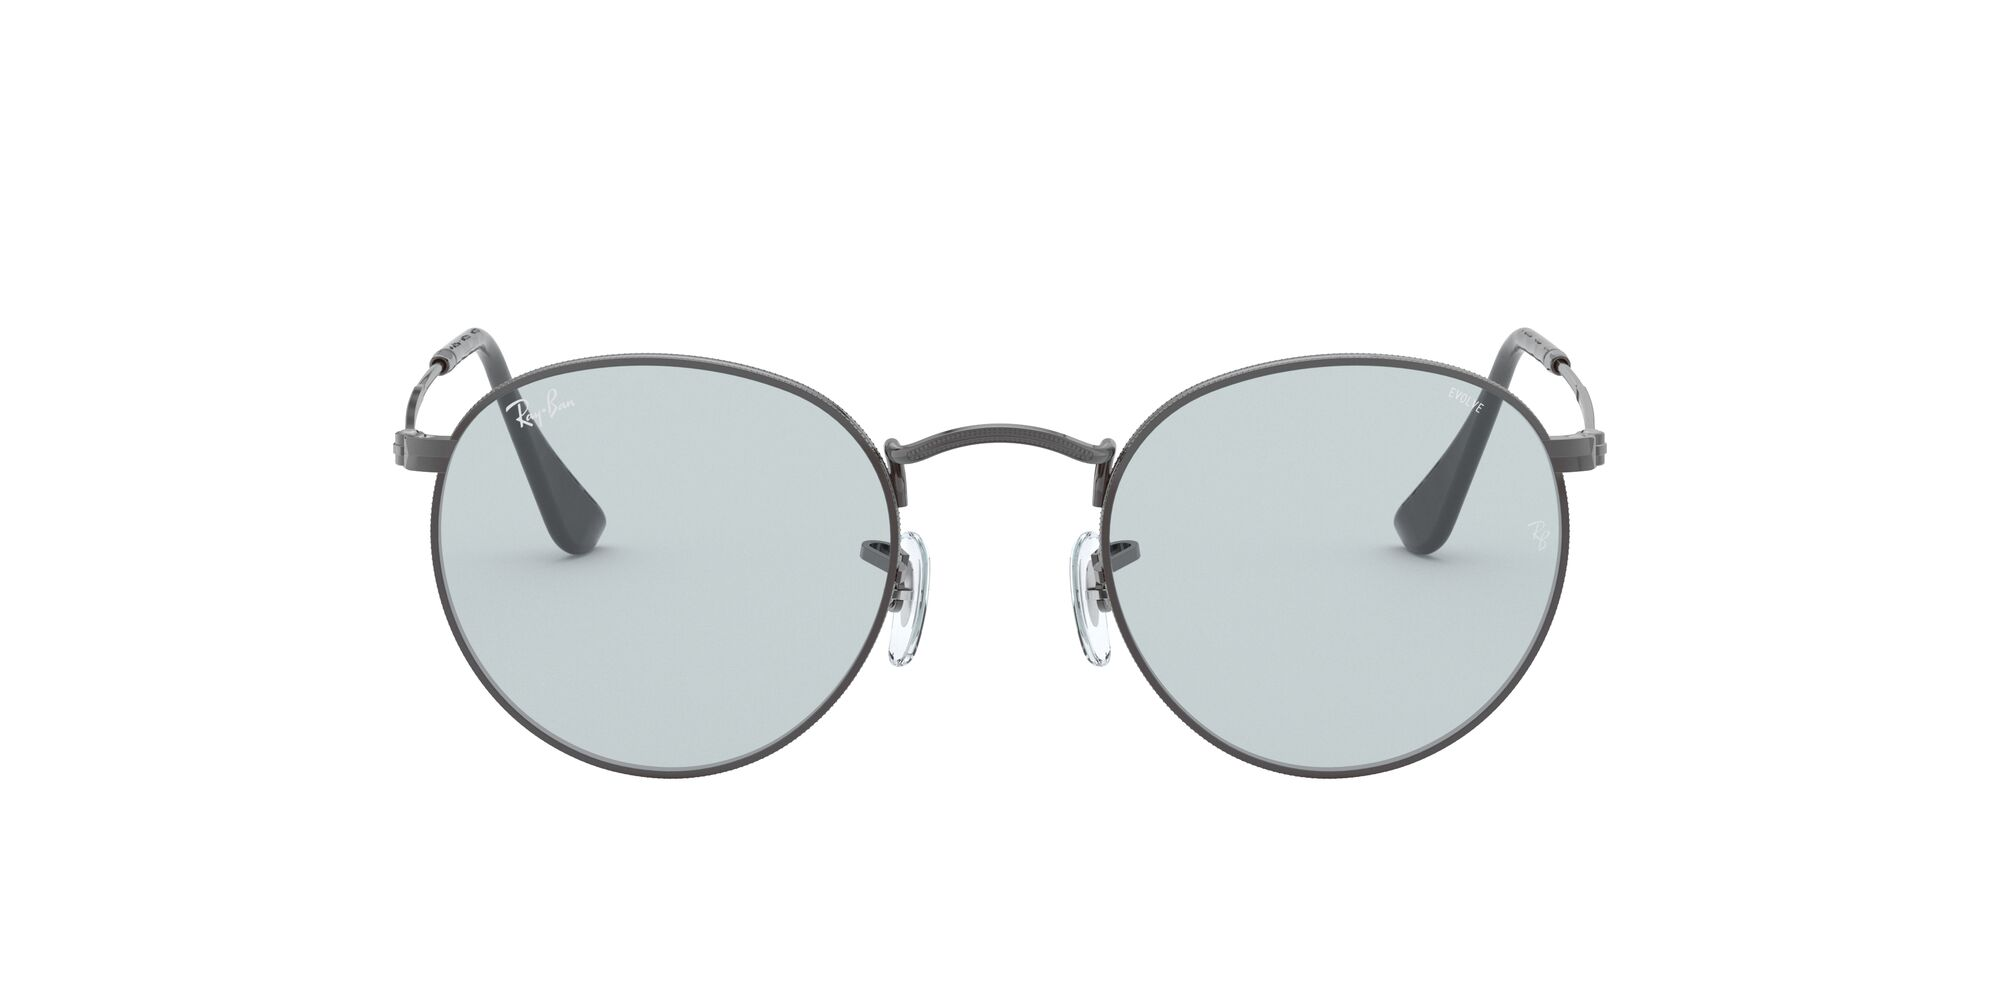 Front Ray-Ban Ray-Ban RB3447 004/T3 53/21 Grijs/Blauw